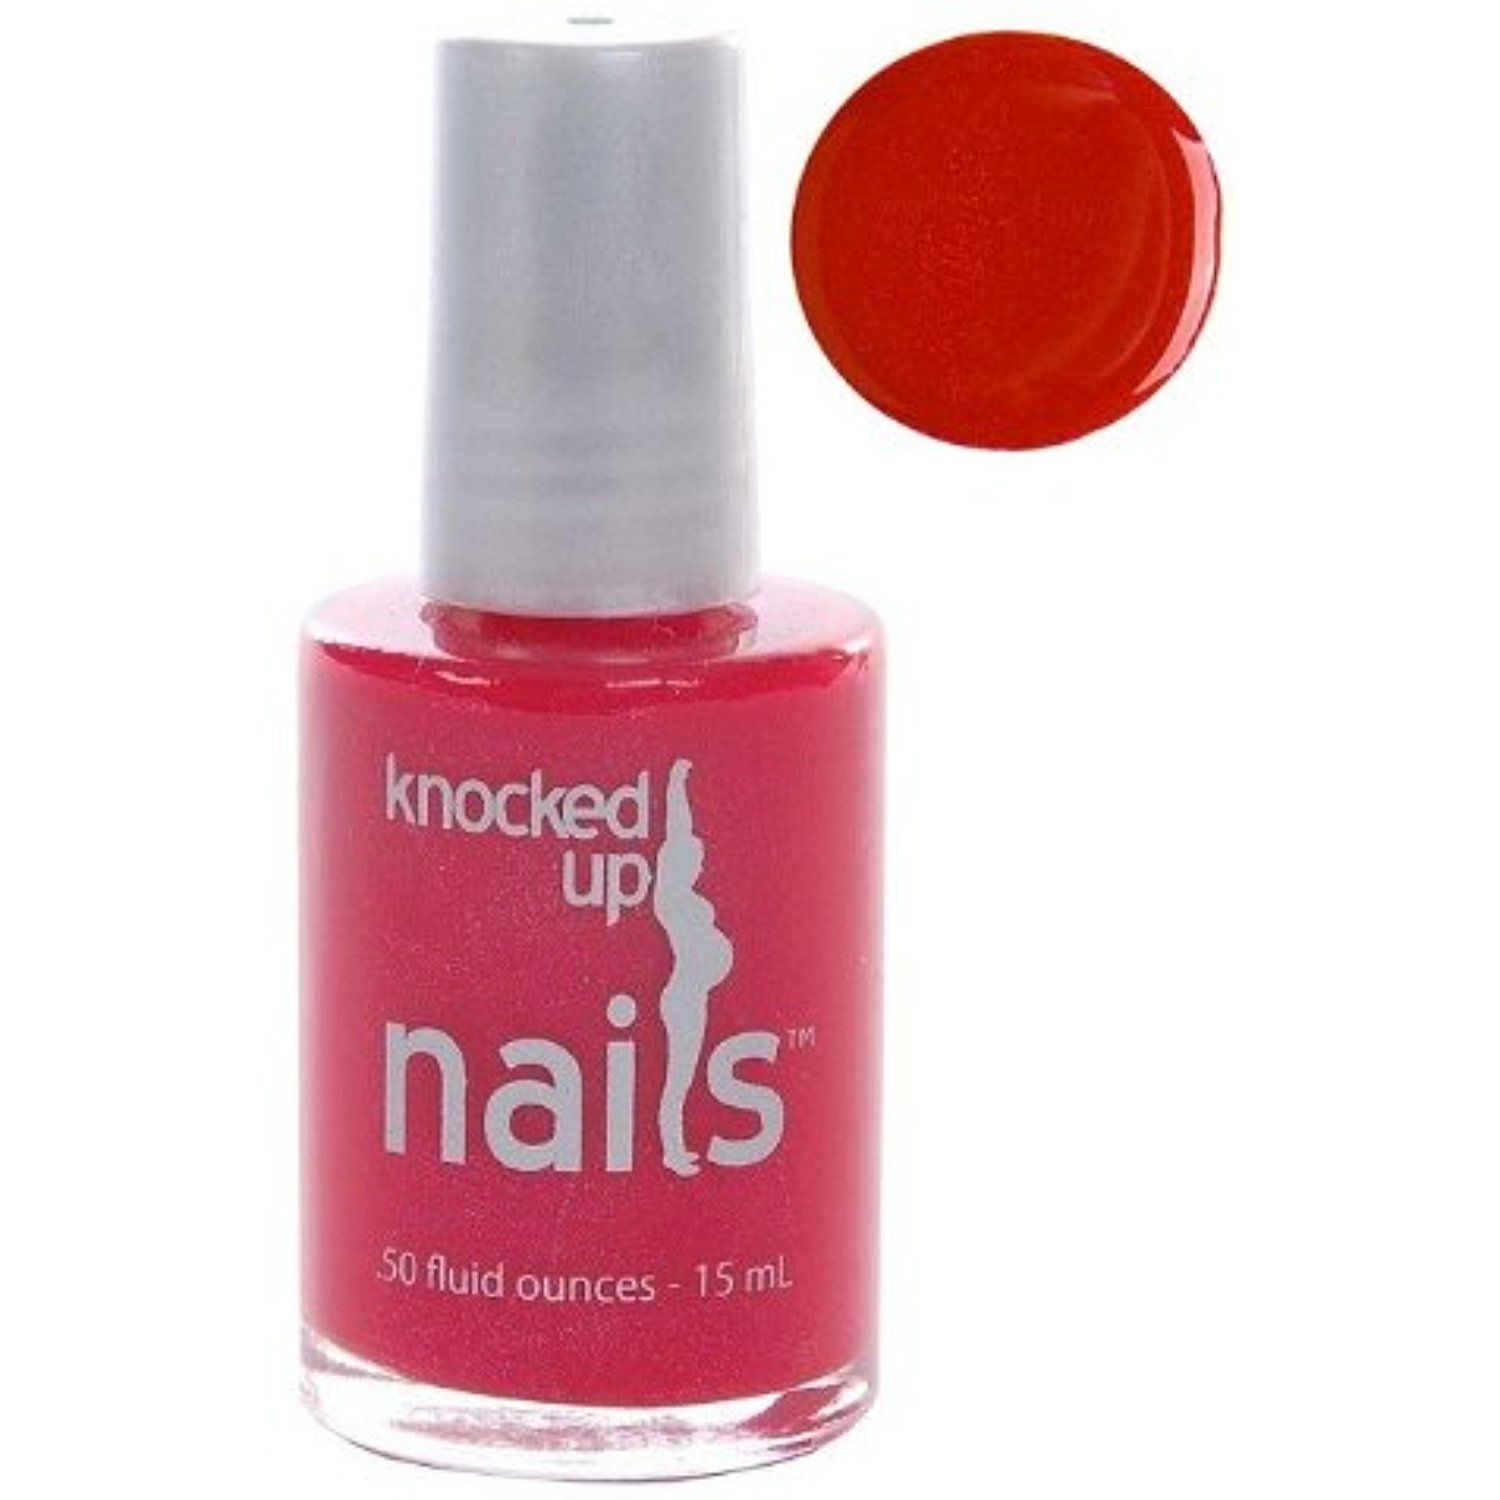 Mom's Night Out - Knocked Up Nails - Maternity Pregnancy Safe Nail ...